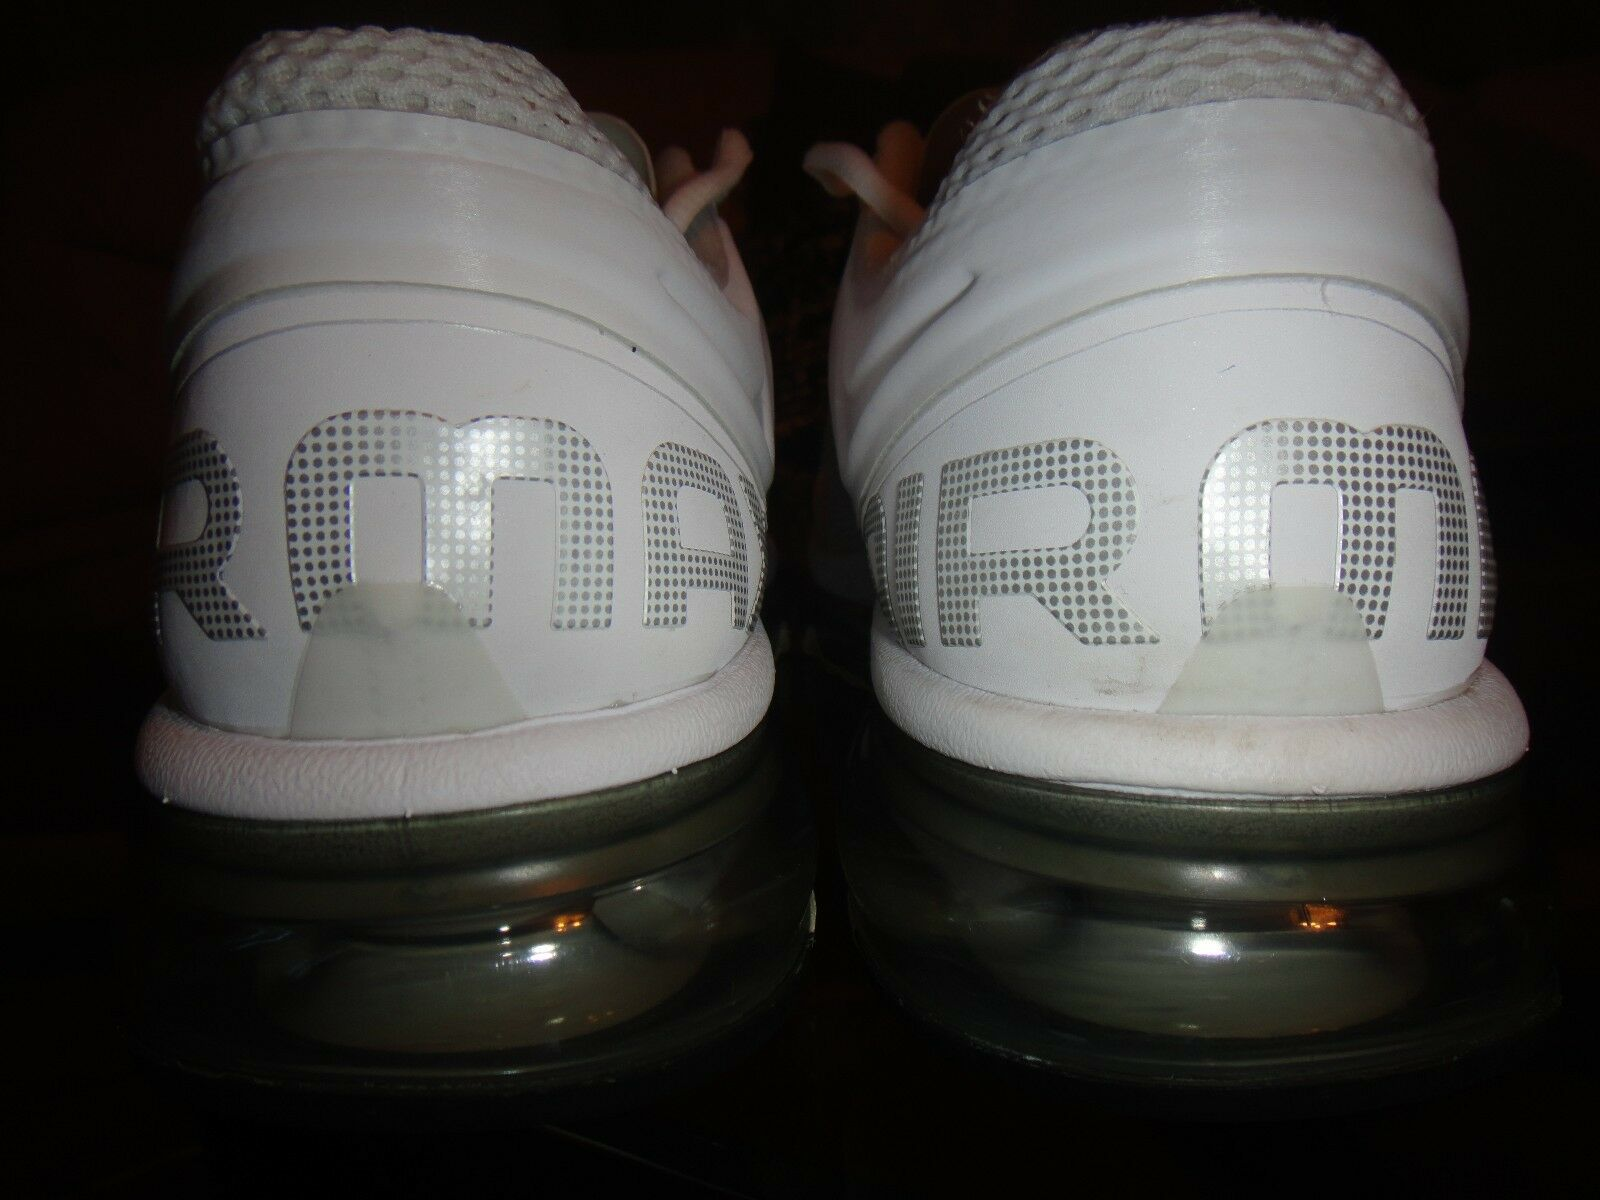 e4649da39d41 ... Women s Nike Air Max Size 9.5 100% 100% 100% AUTHENTIC Pre-owned ...